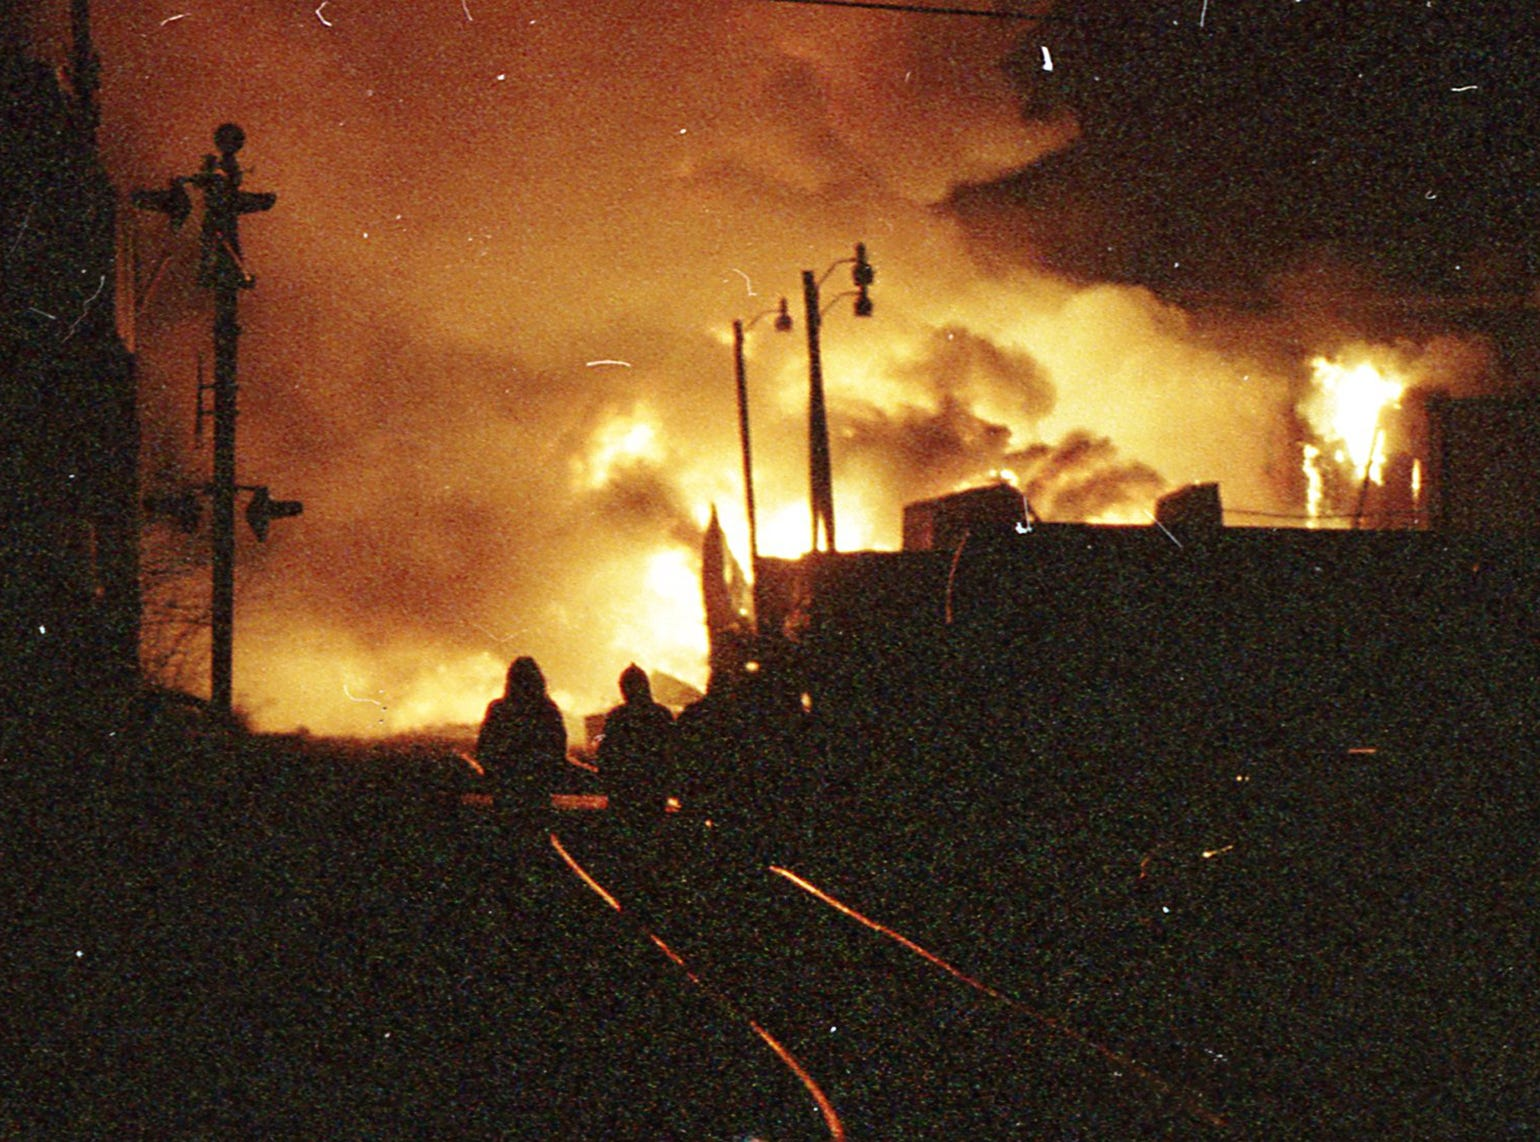 The fire reflects off railroad tracks. A fire began at the former Thonet Furniture plant at 491 East Princess Street on December 11, 1993. Eventually, the four alarm fire spread through the complex of buildings and several other properties.